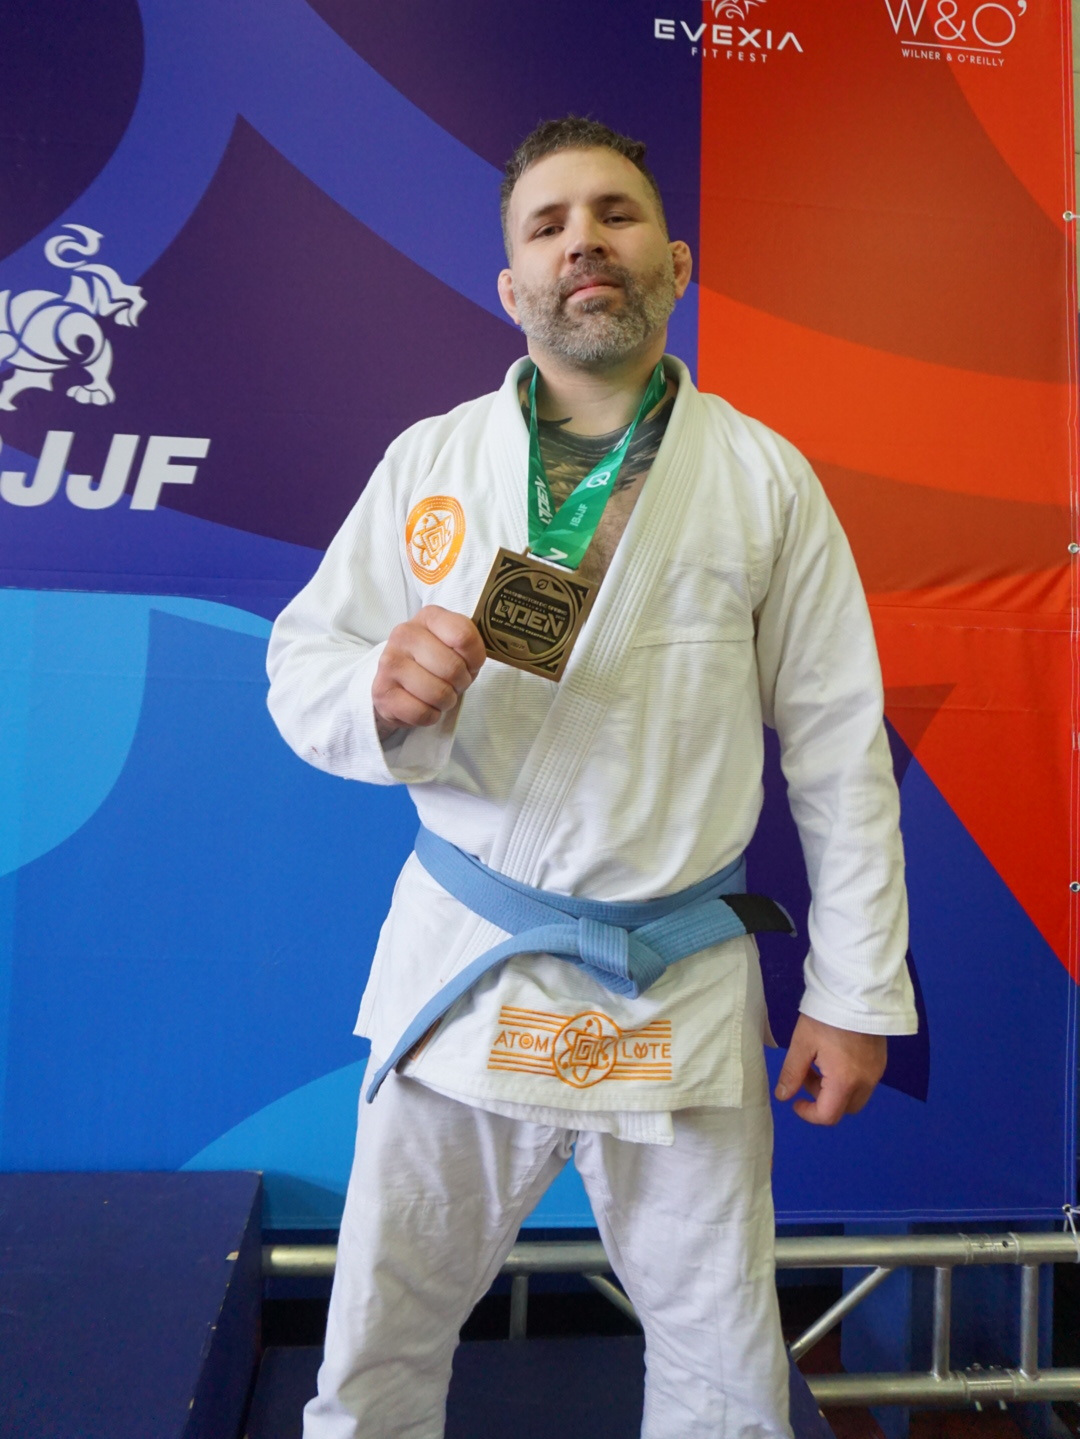 True Believer blue belt and tenacious competitor David Armbrecht earned third place in his division.